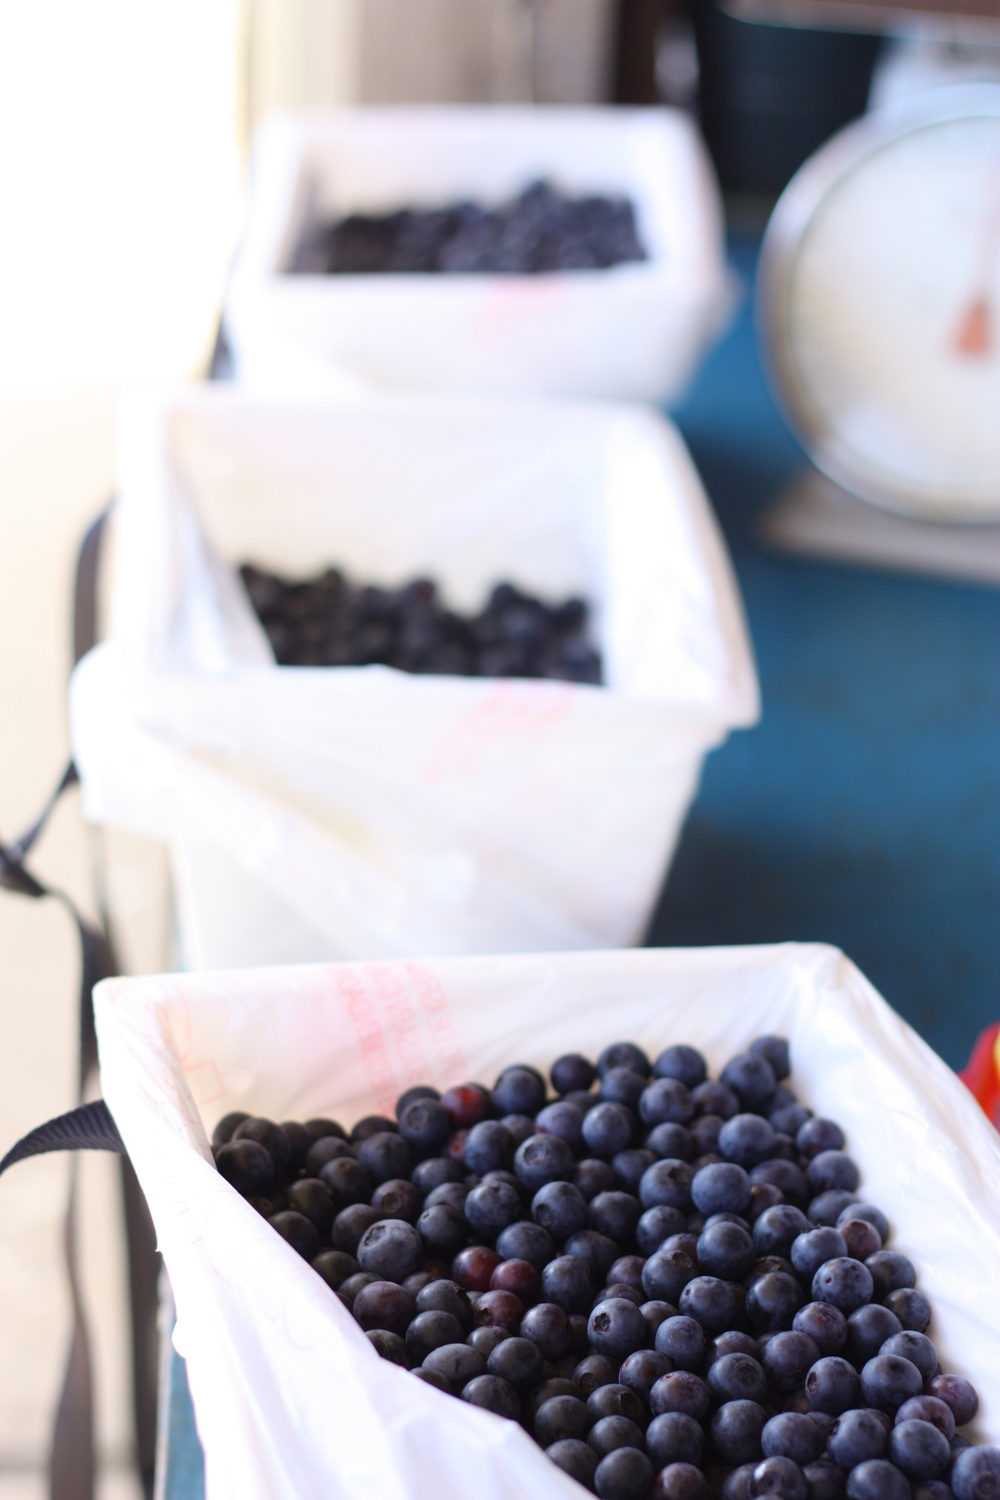 Blueberry Picking in the Pensacola Area